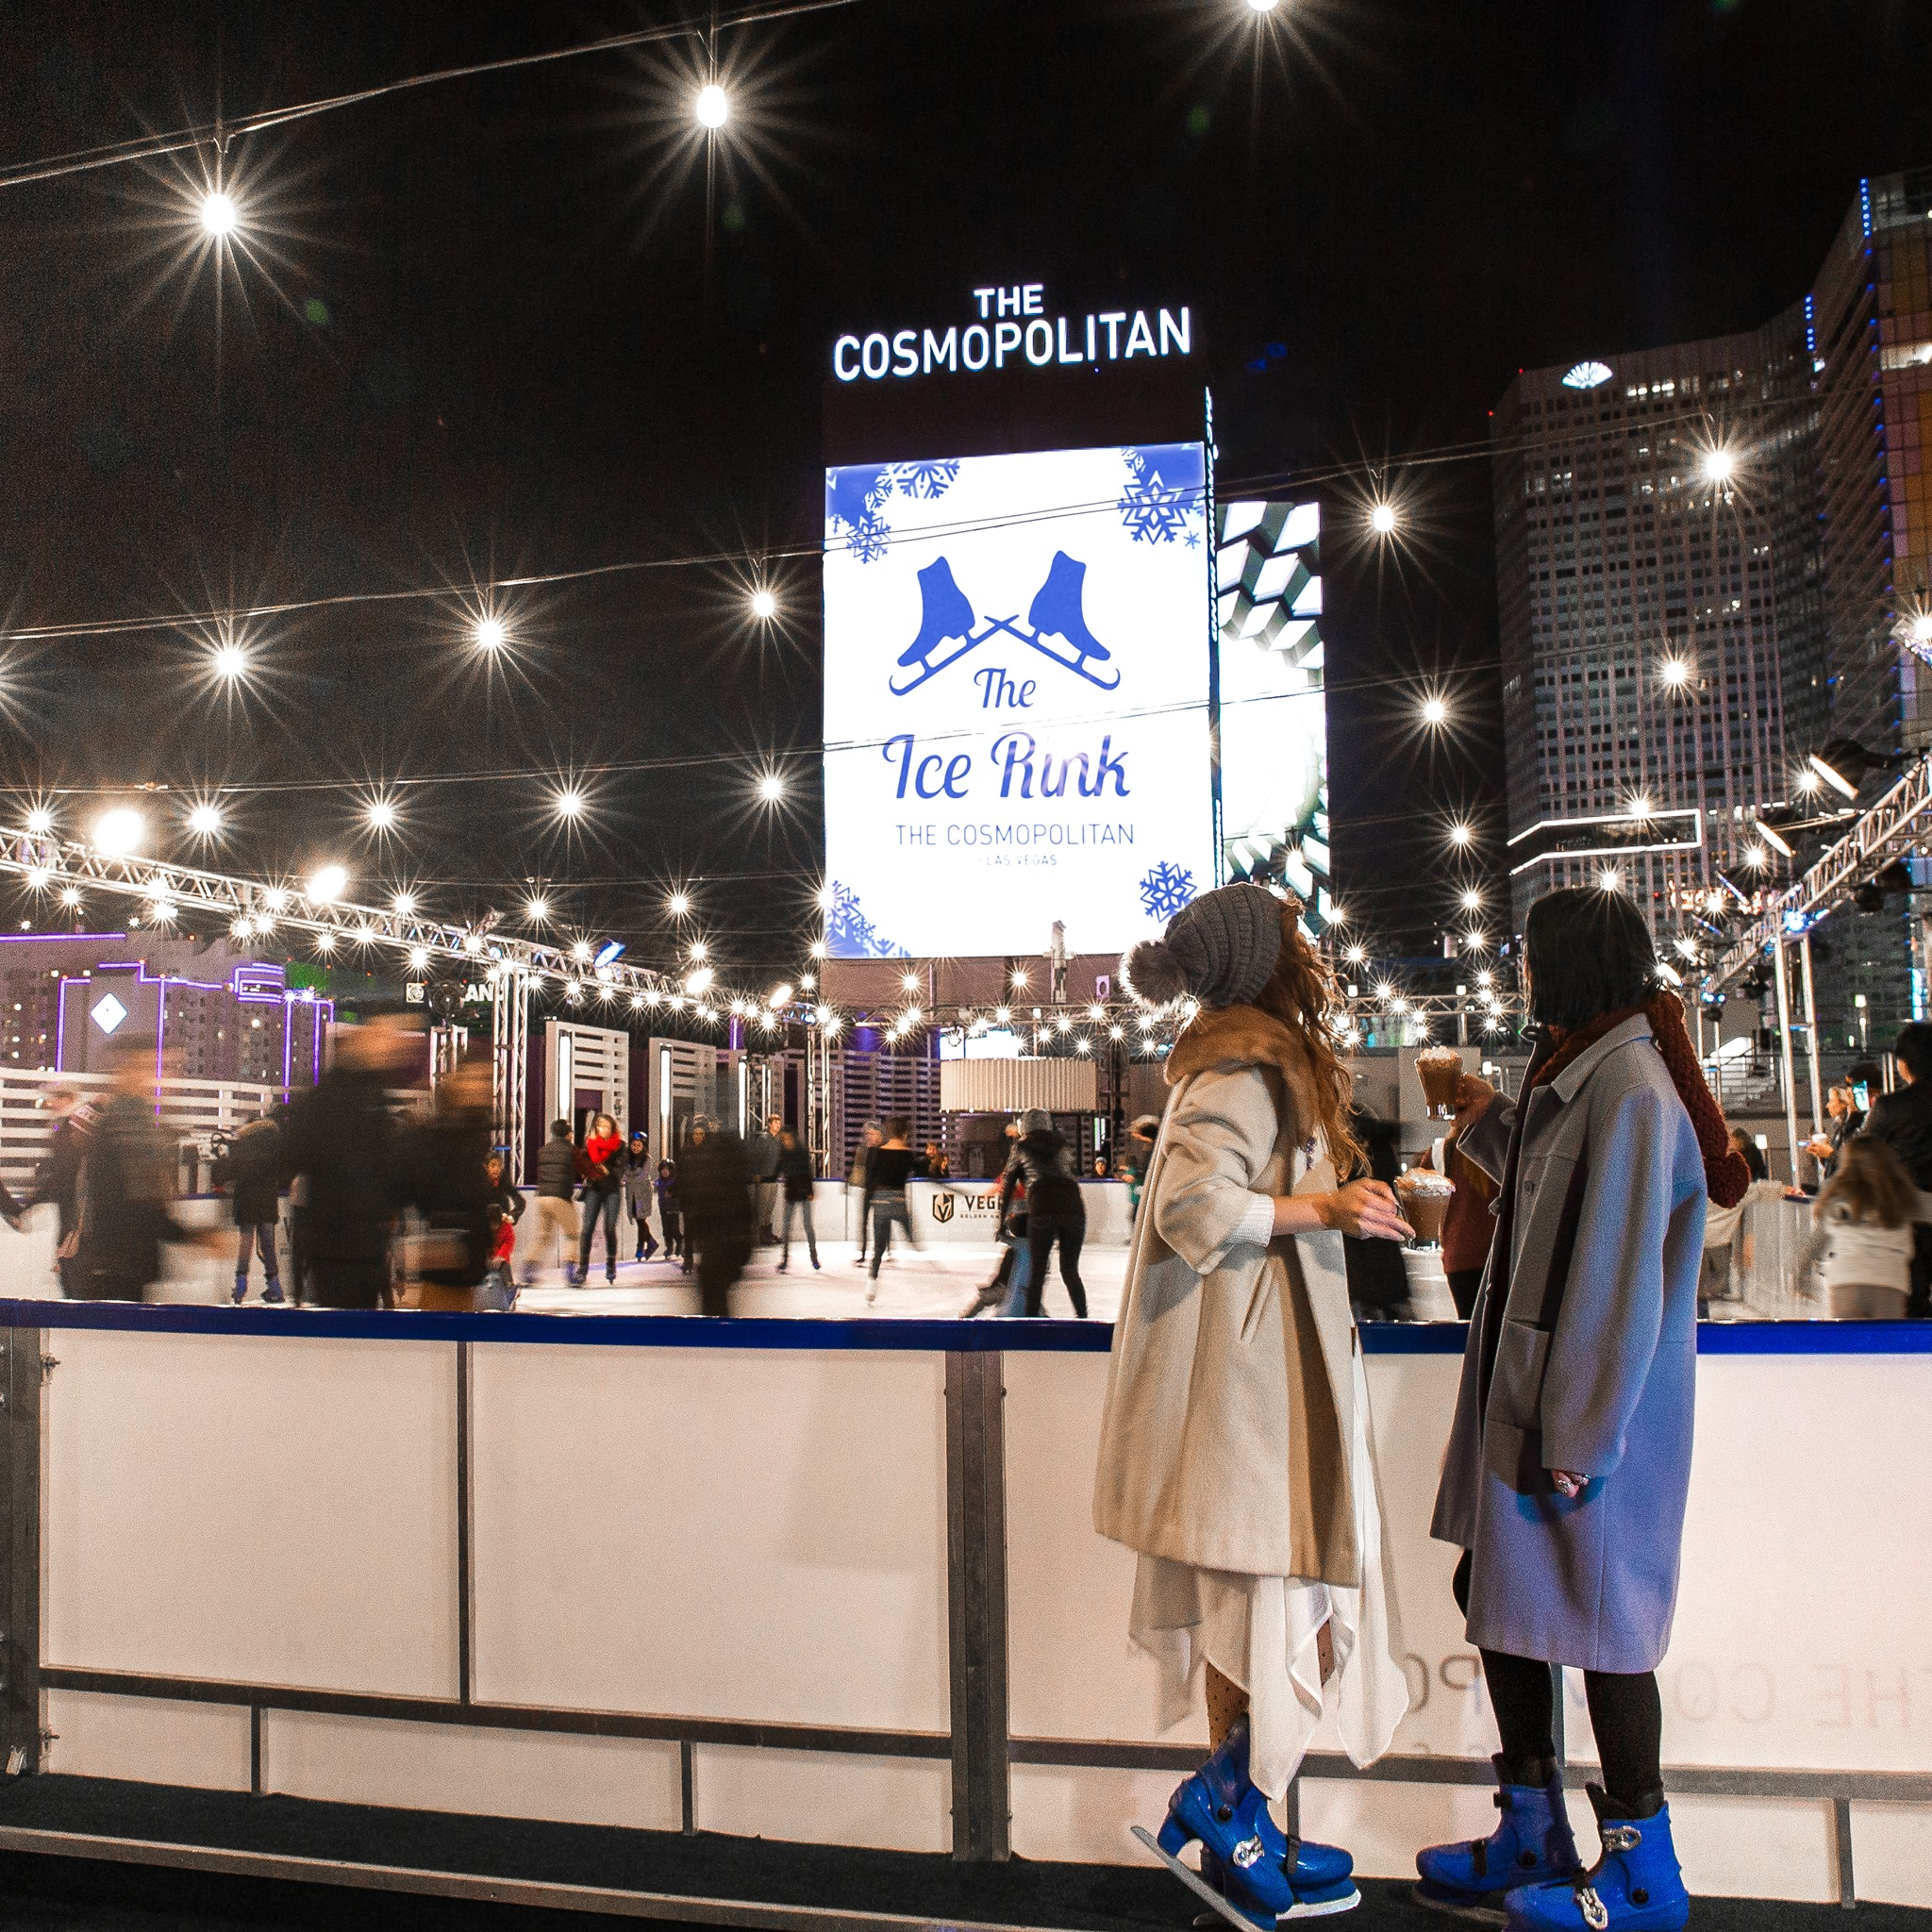 The Ice Rink at the Cosmopolitan with people skating in front of the big movie screen